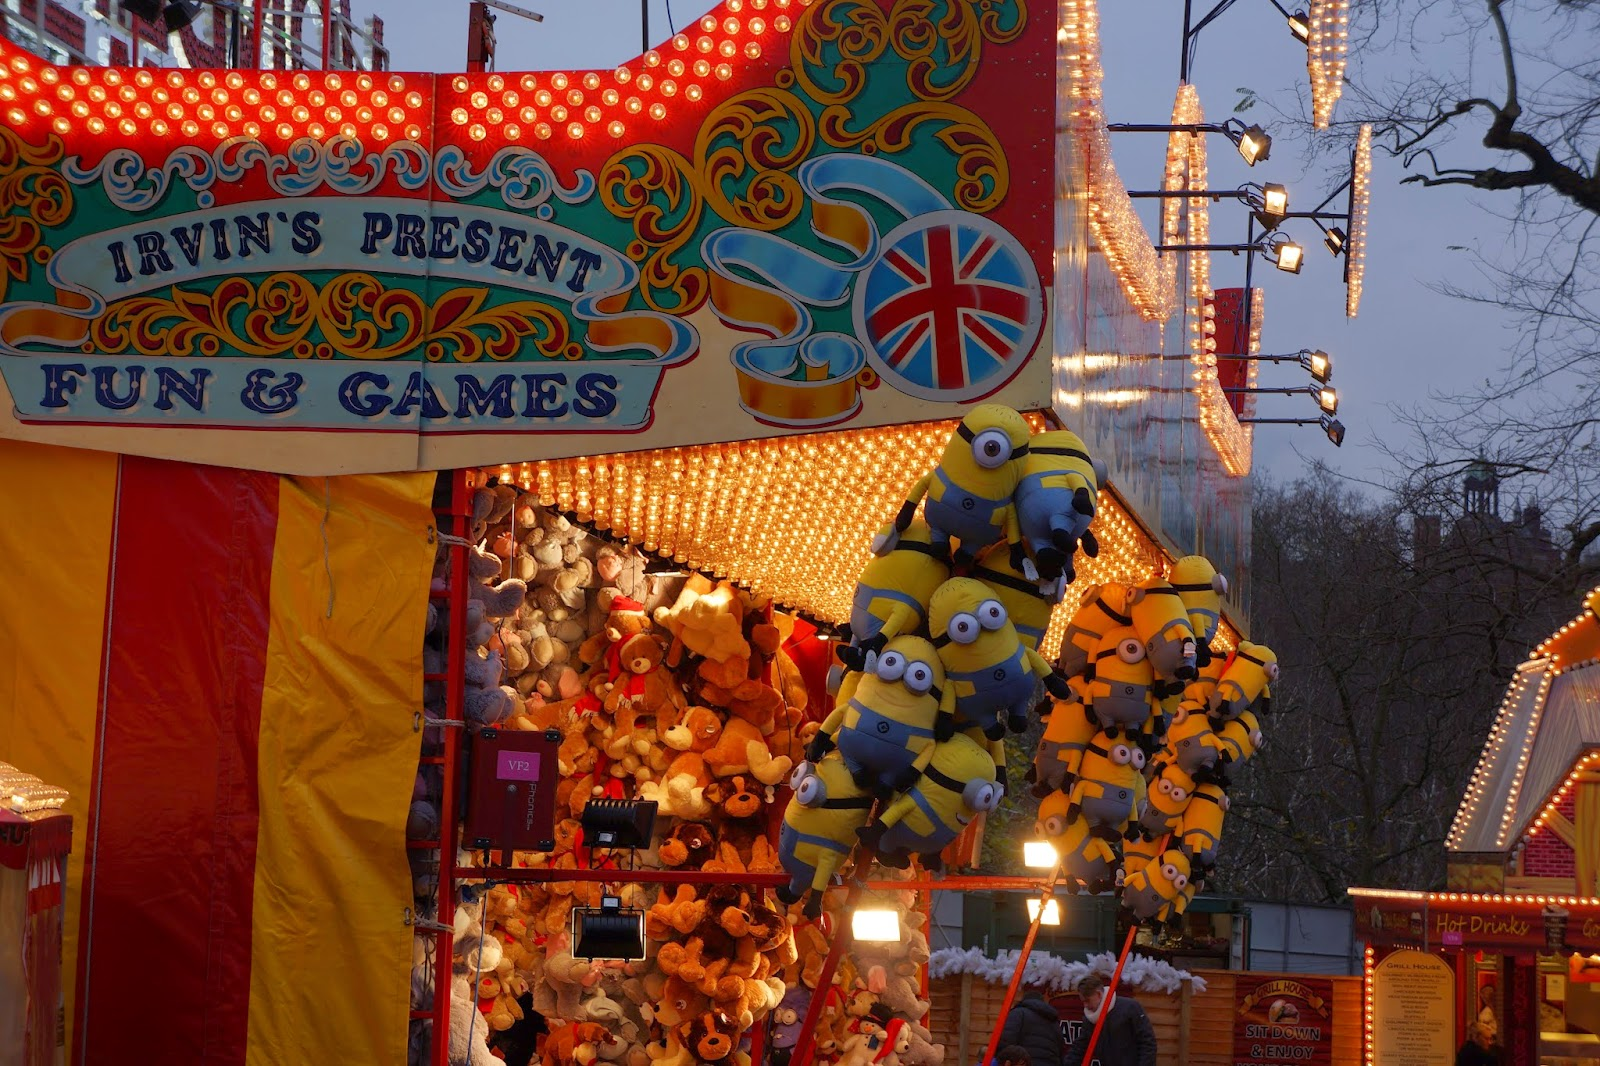 hyde park winter wonderland games